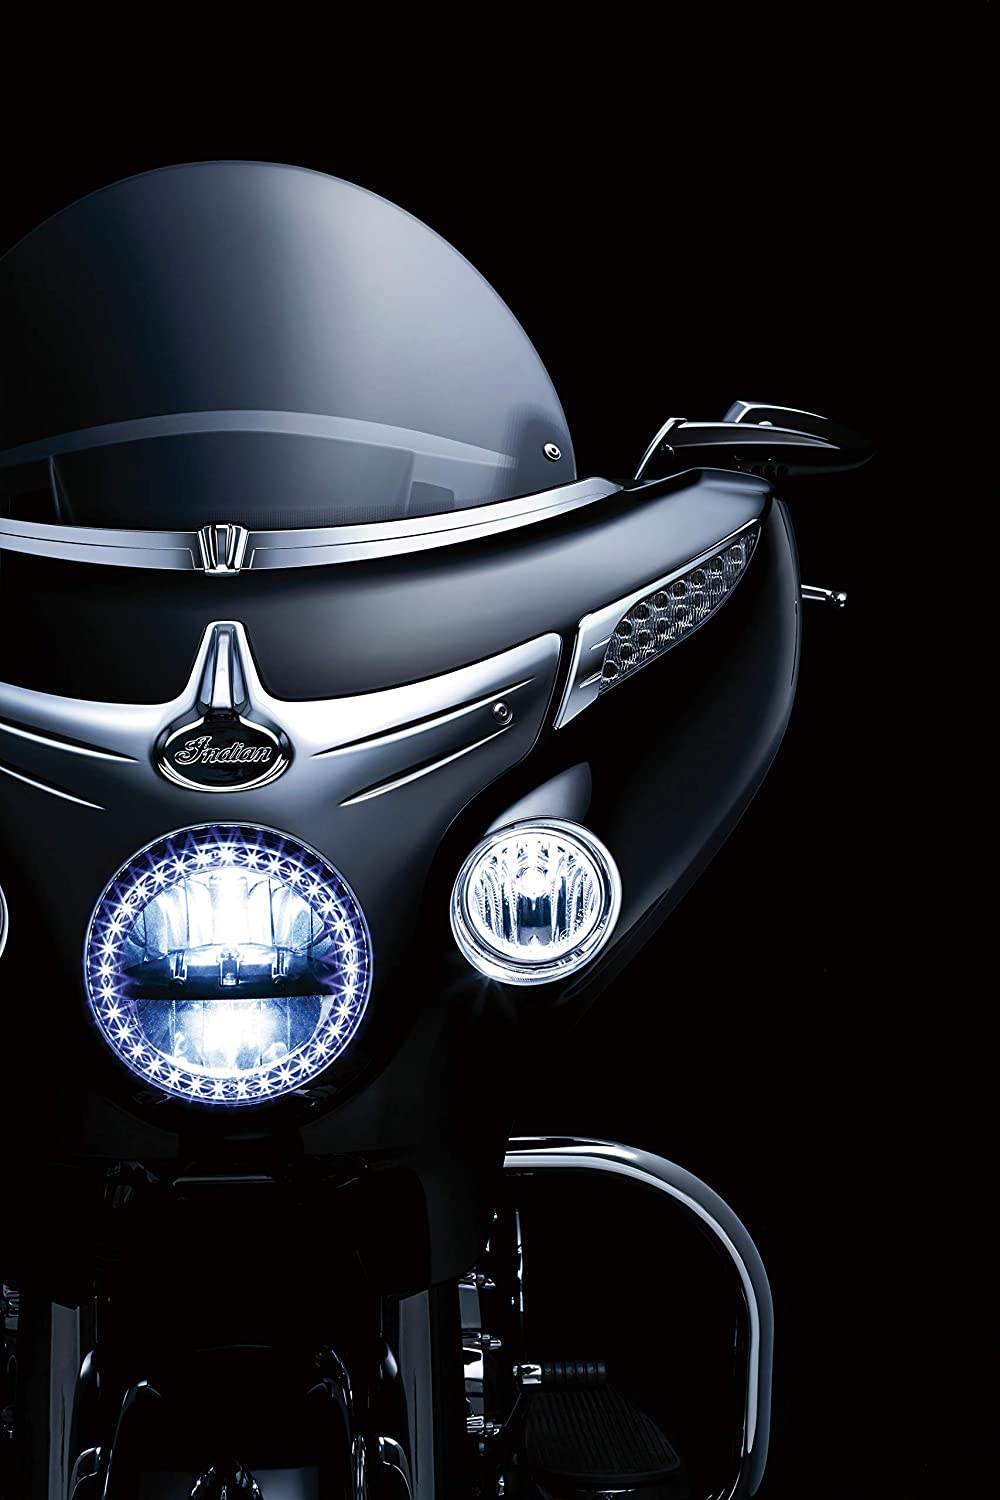 1 Pair Kuryakyn 5621 Motorcycle Accent Accessory Fairing Turn Signal Trim for 2014-19 Indian Motorcycles Chrome